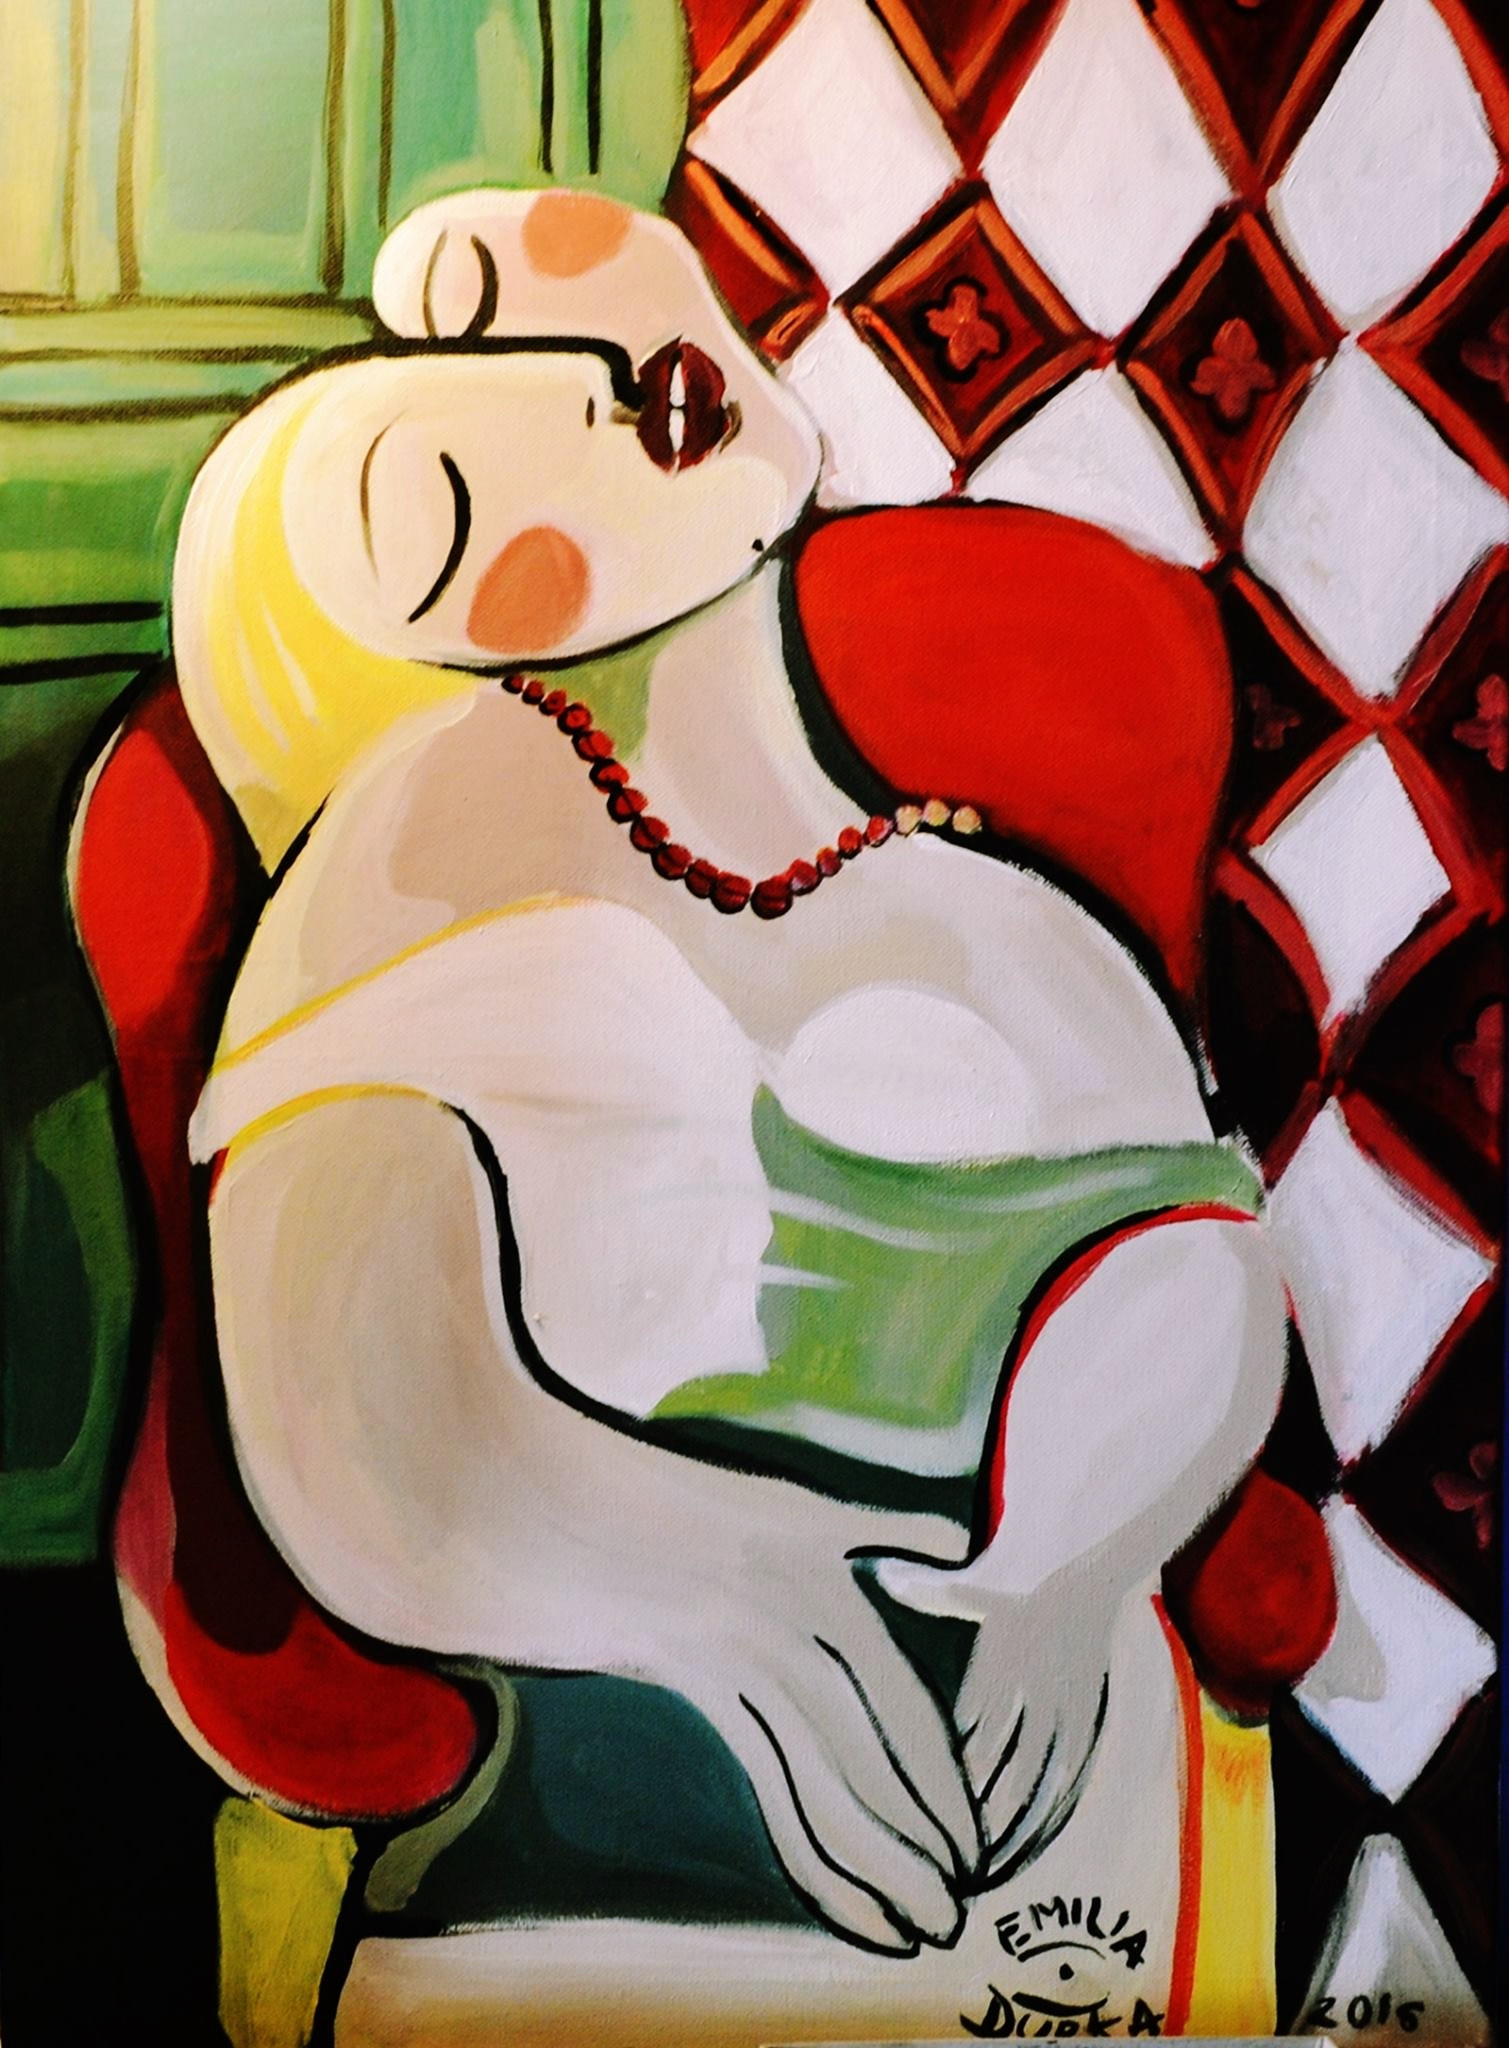 Dreaming about Picasso